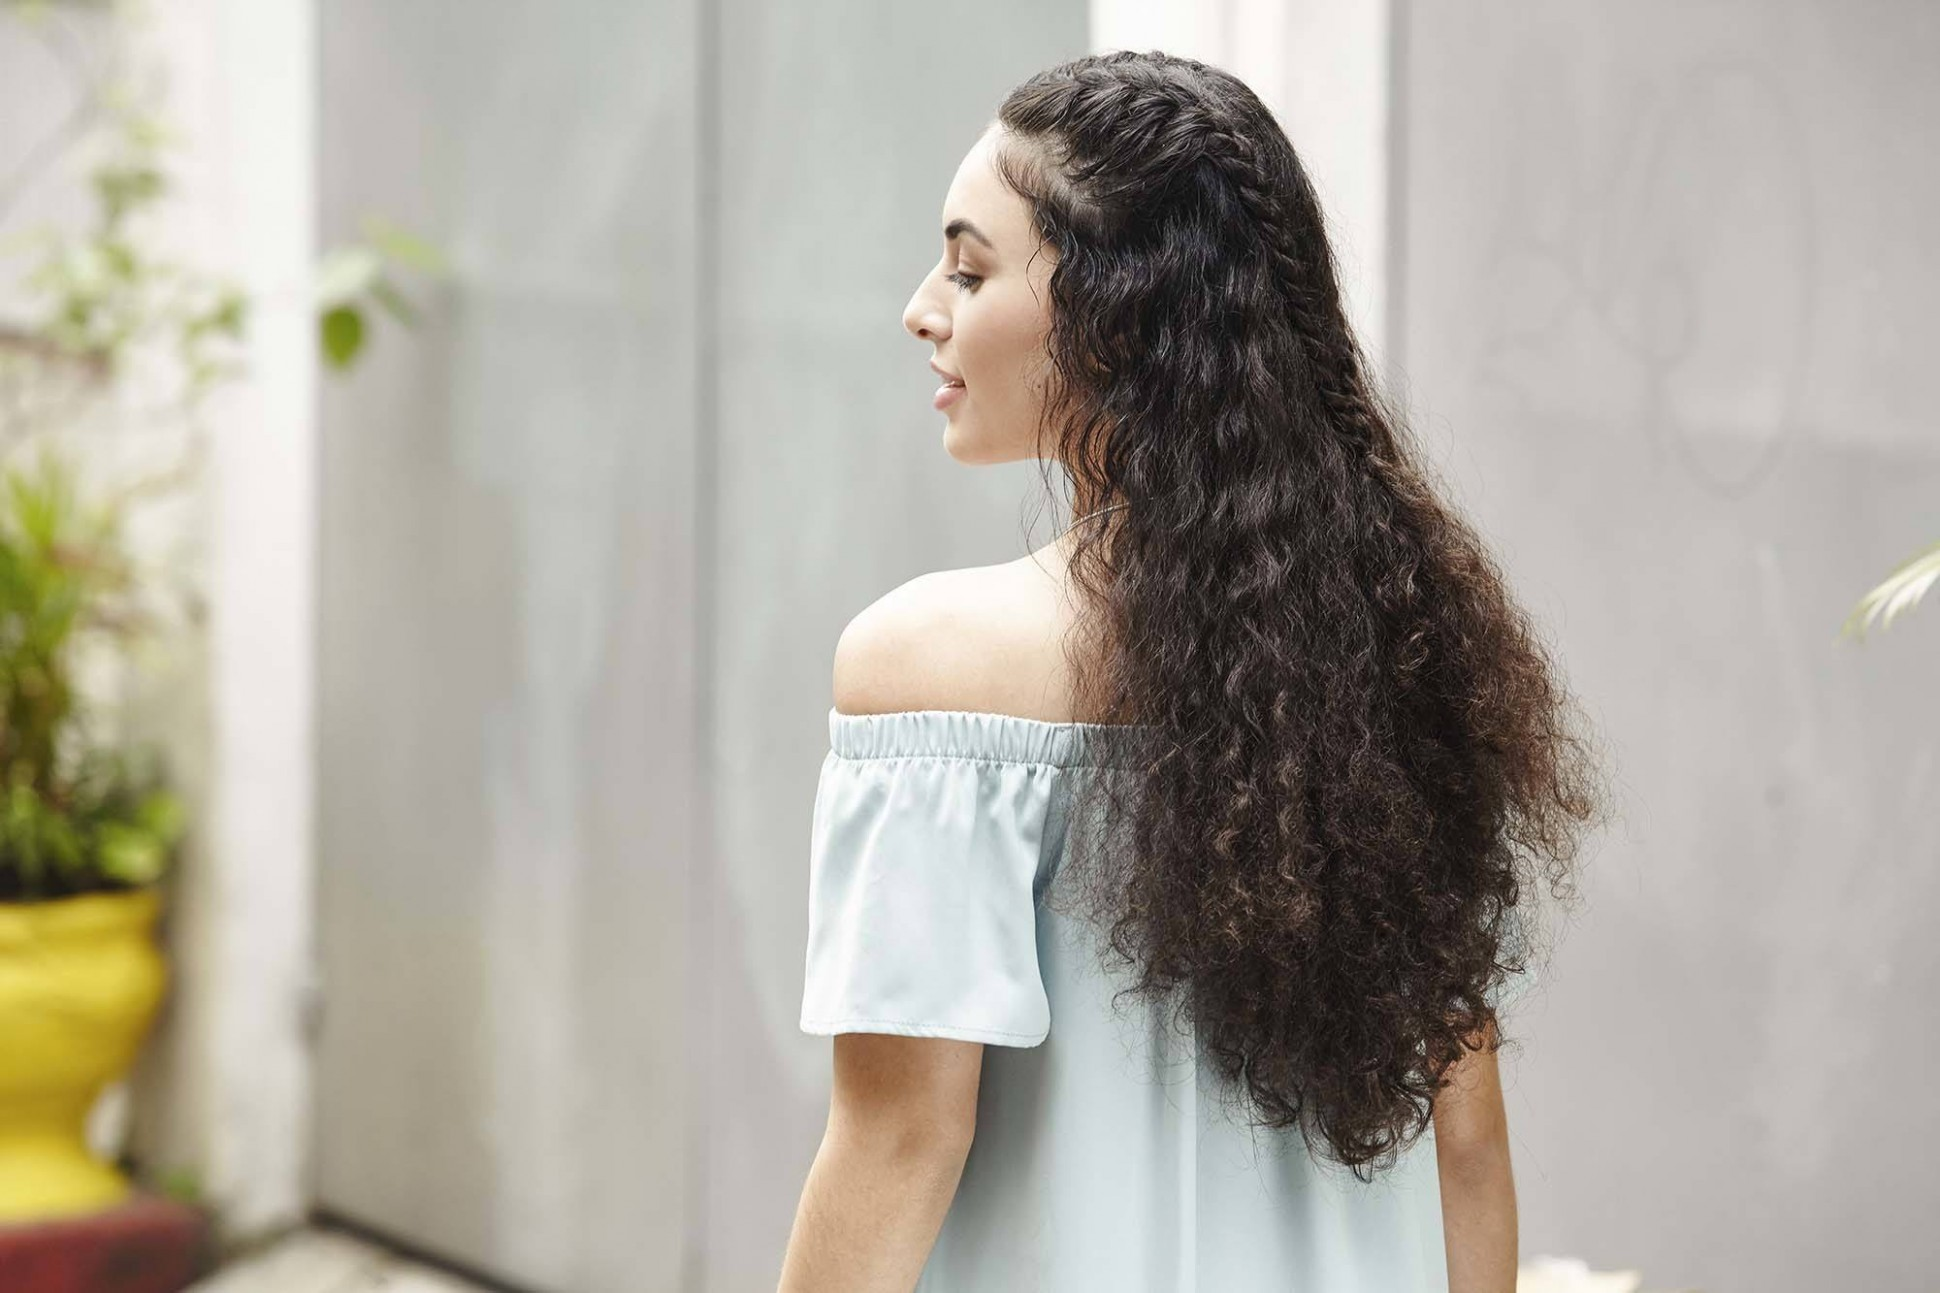 Curly Braided Hairstyle Tutorial: Create The Look In 12 Steps Half Braided Hair With Curls